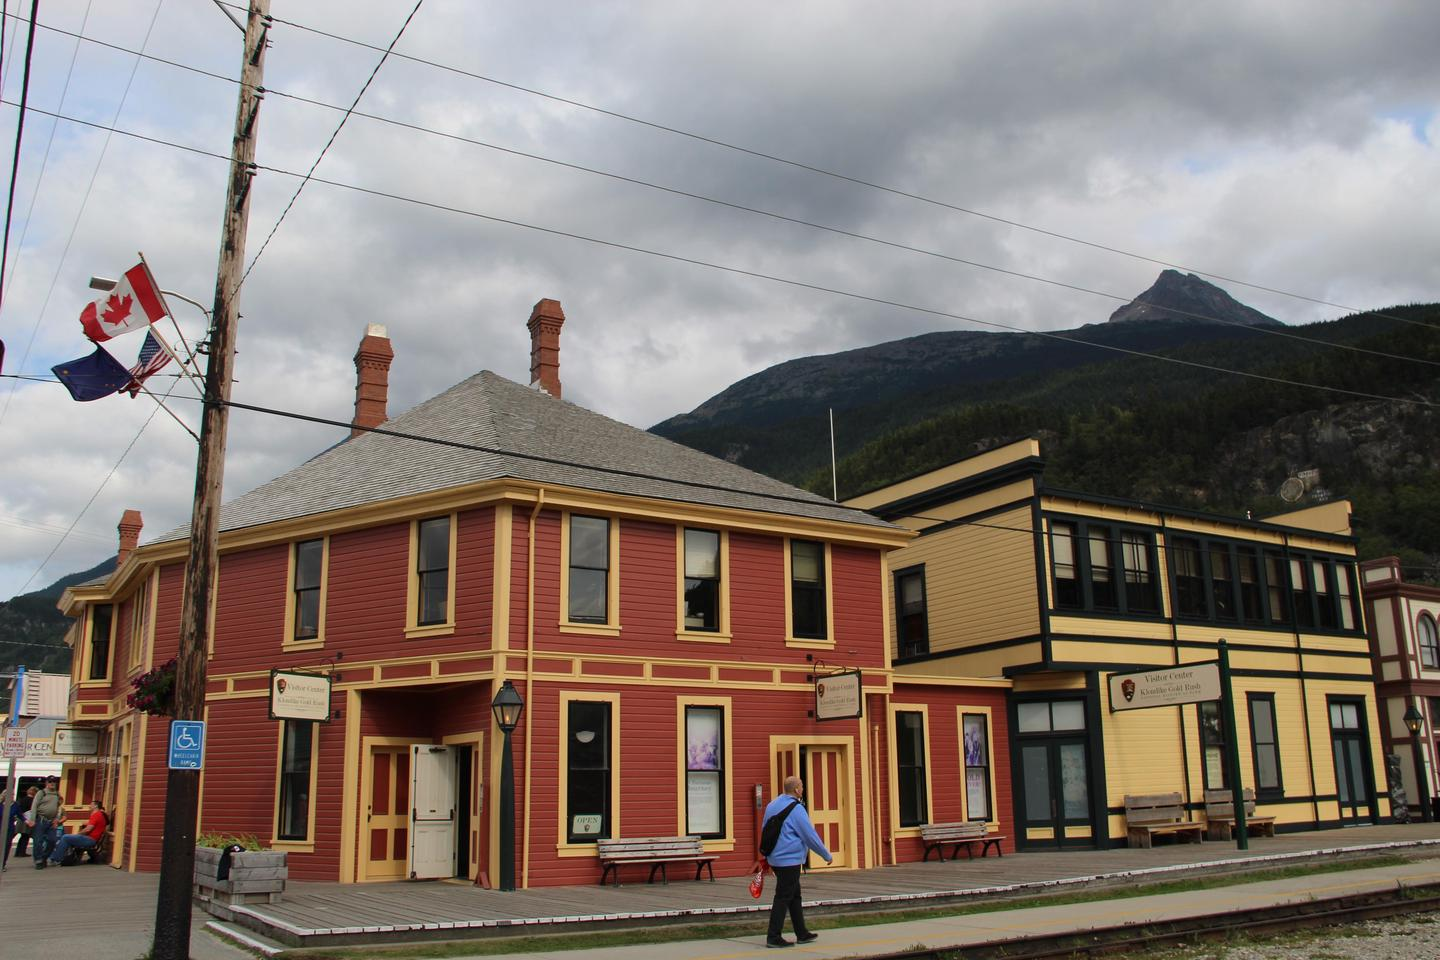 Klondike Gold Rush National Historical Park Visitor CenterThe park's visitor center is located at 2nd and Broadway right by the railroad tracks.